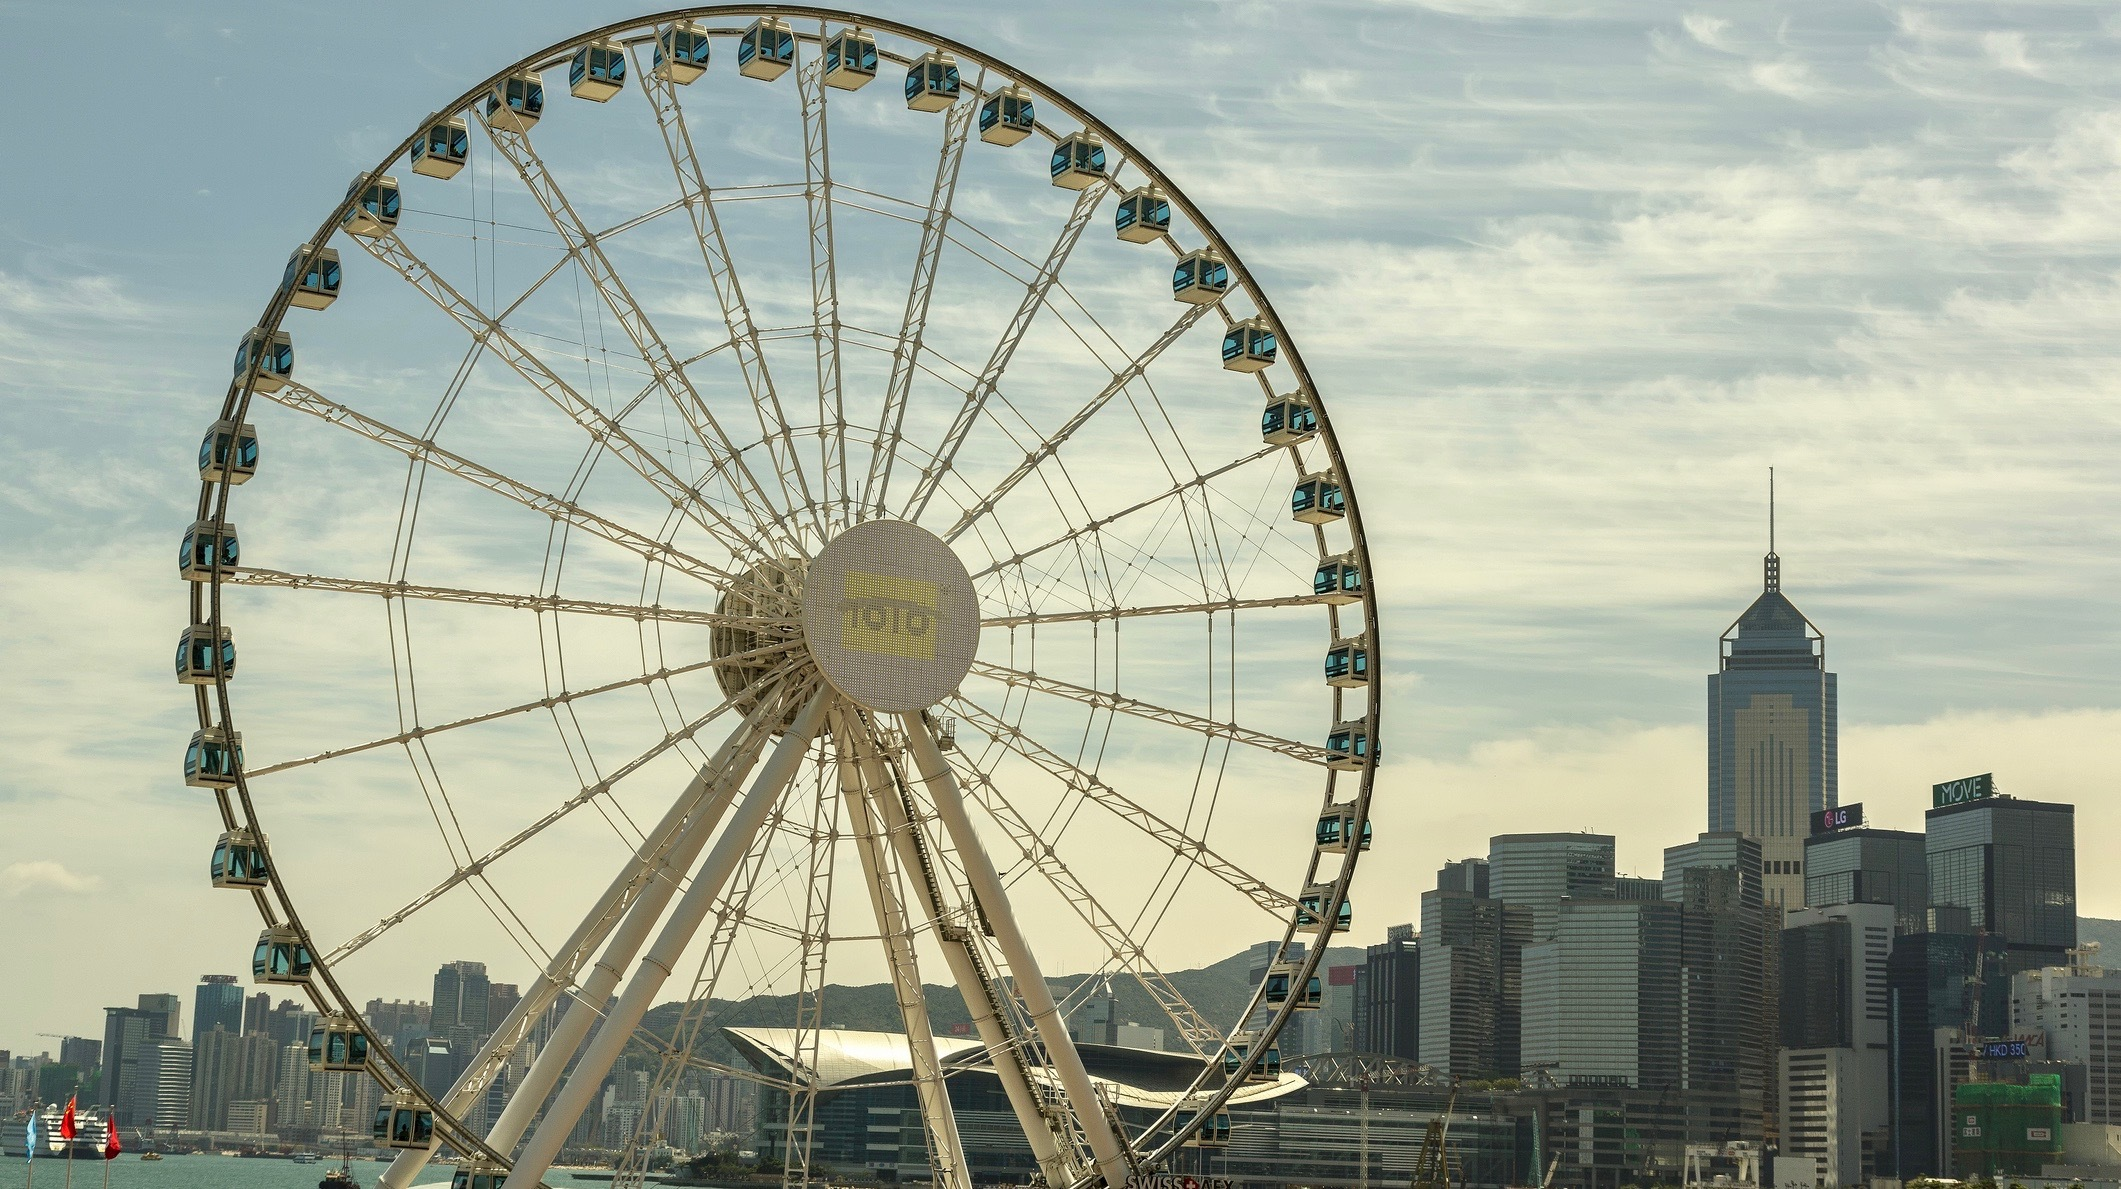 Try guided meditation on the Observation Wheel for free this weekend